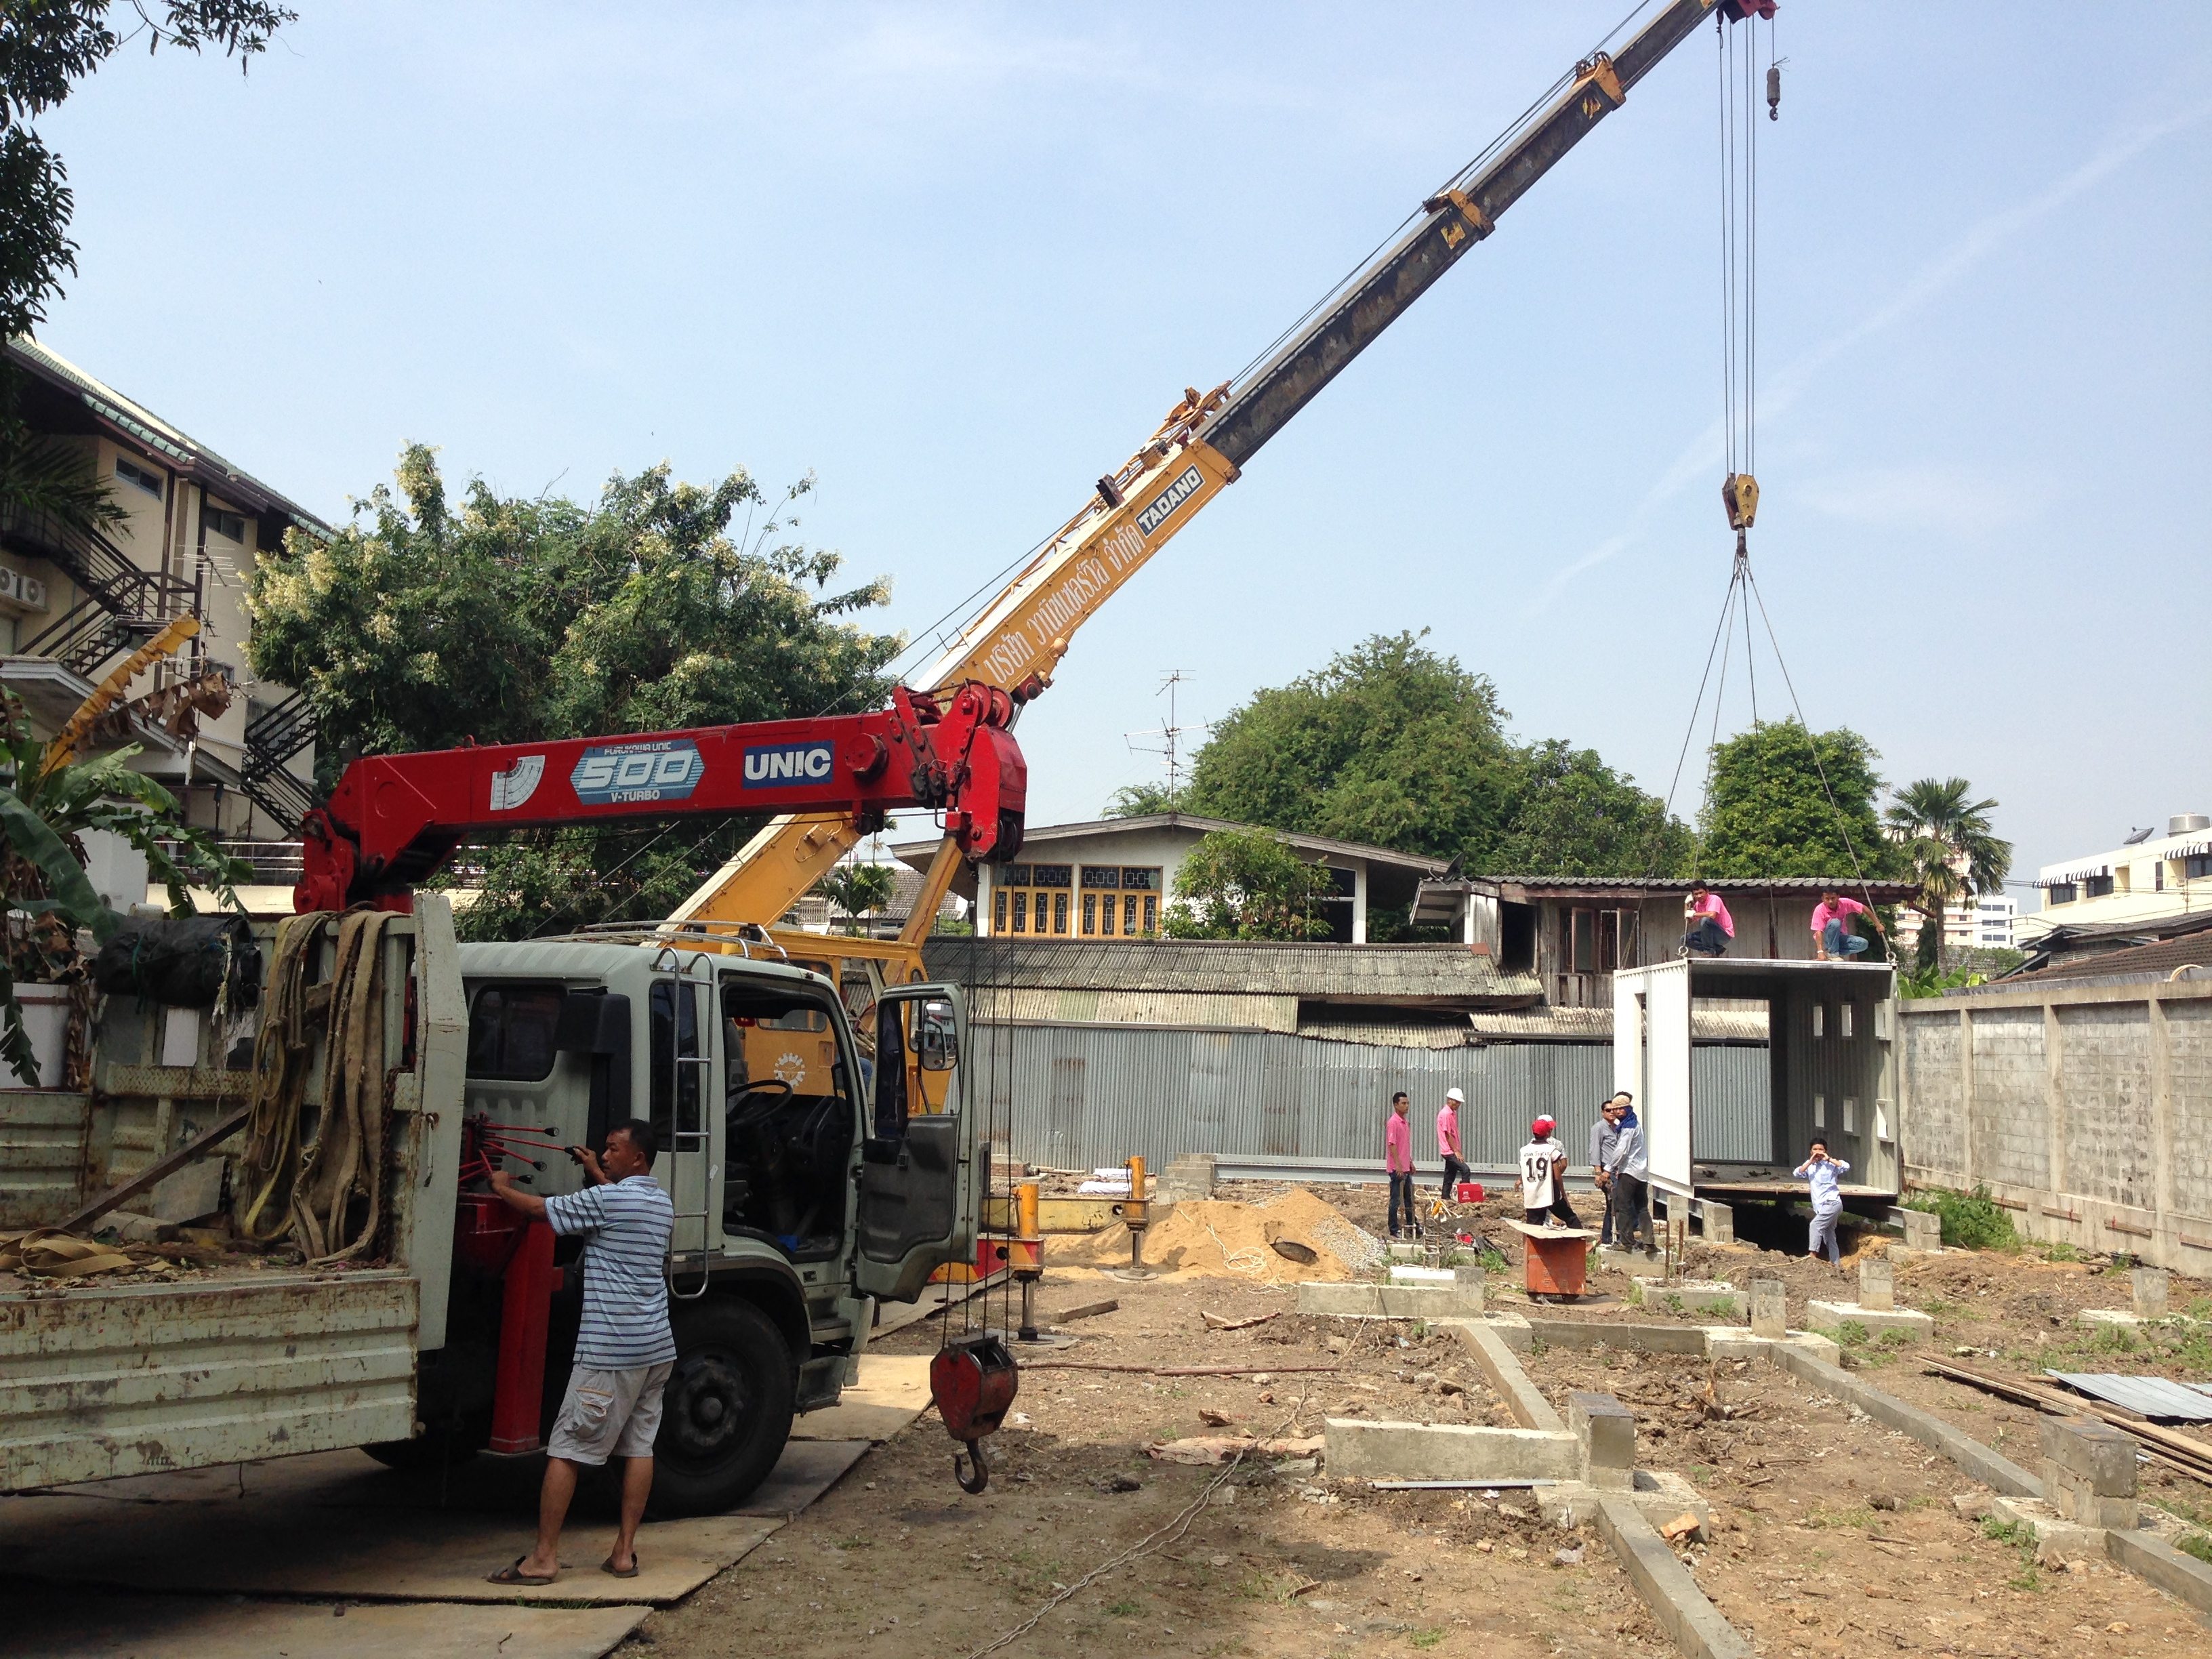 The first of Yard hostel container be installed